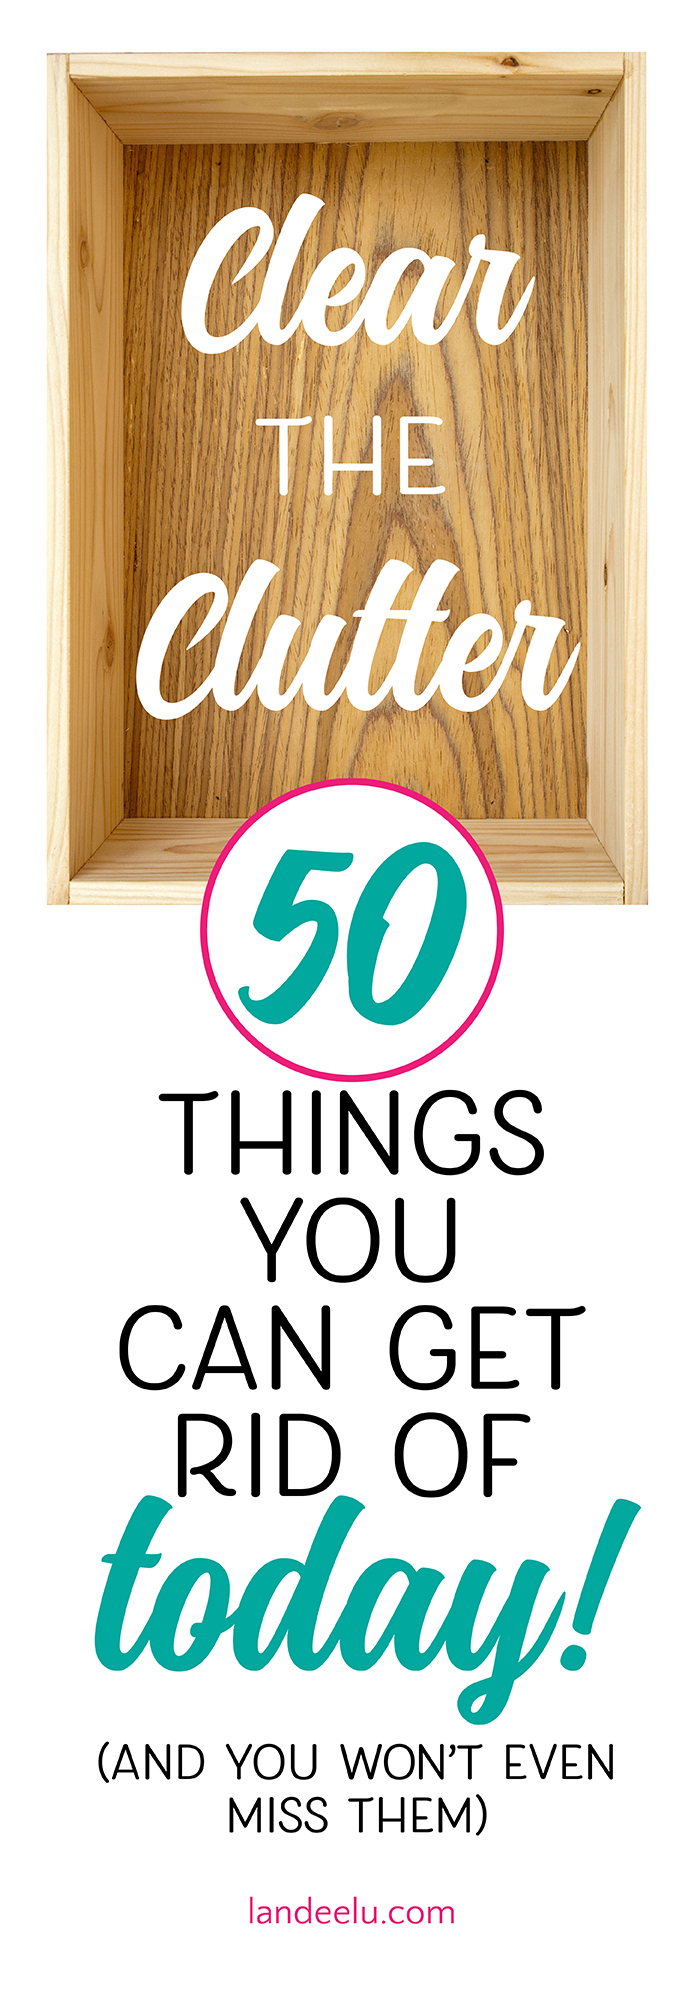 Time to declutter and create some space! 50 things to get rid of today!